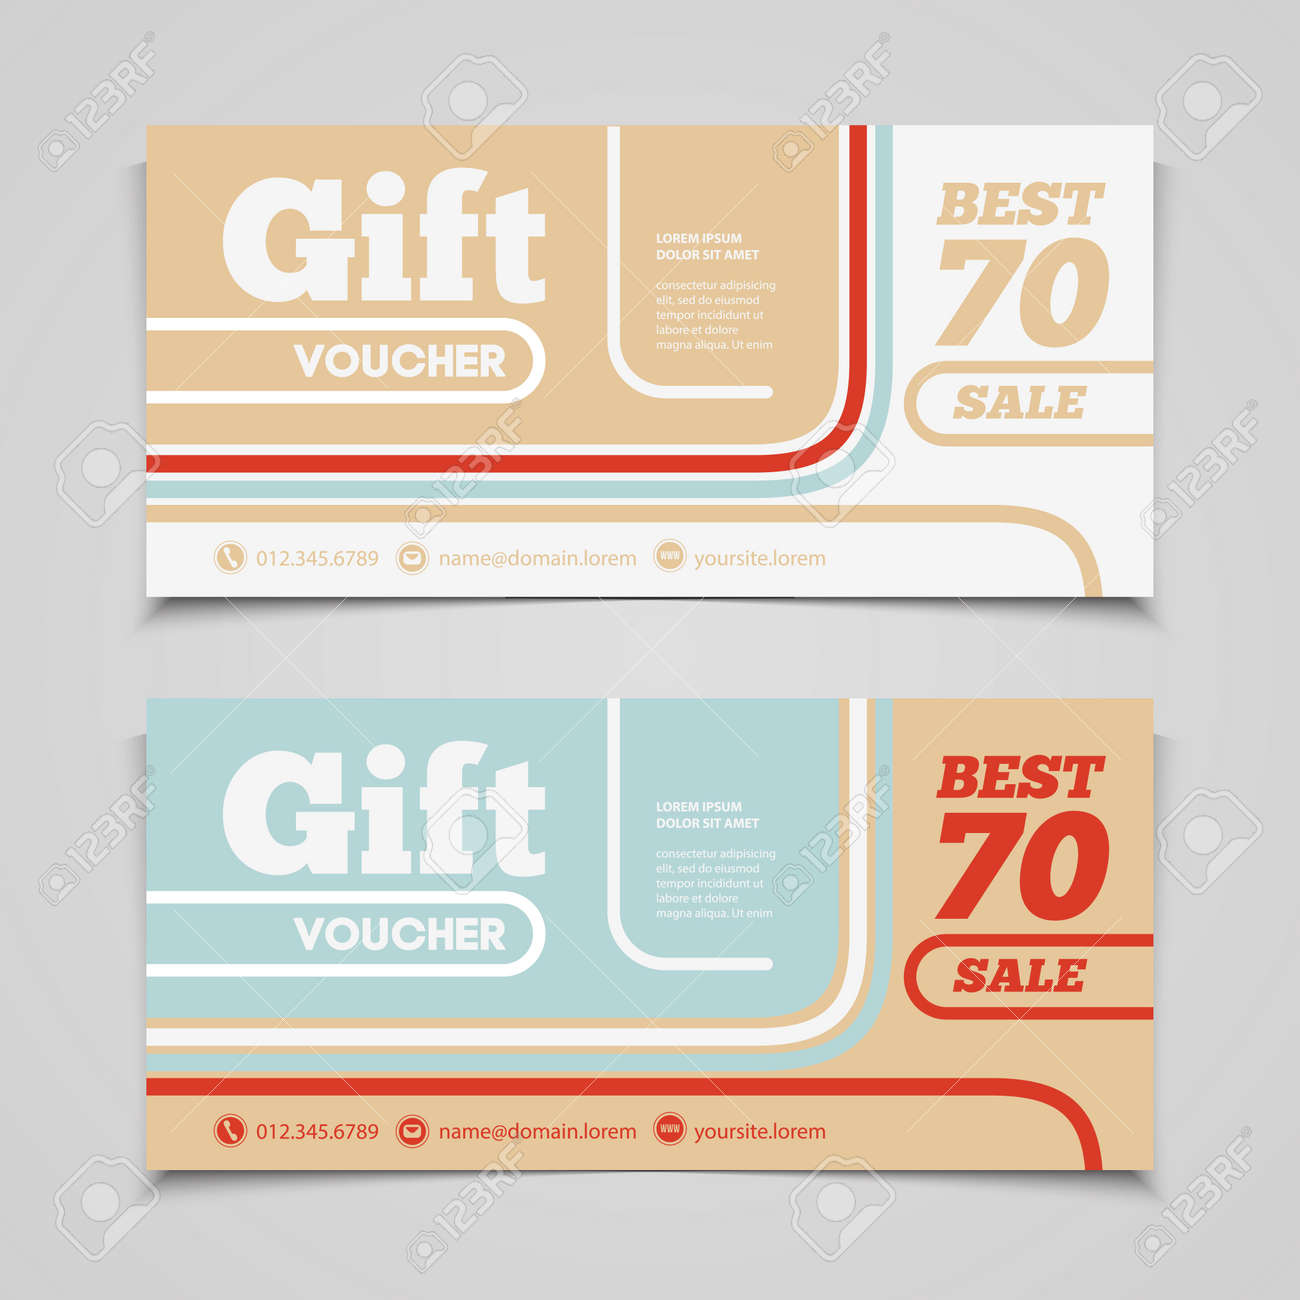 Perfect Two Coupon Voucher Design. Gift Voucher Template With Amount Of Discount  And Contact Information.  Free Voucher Design Template